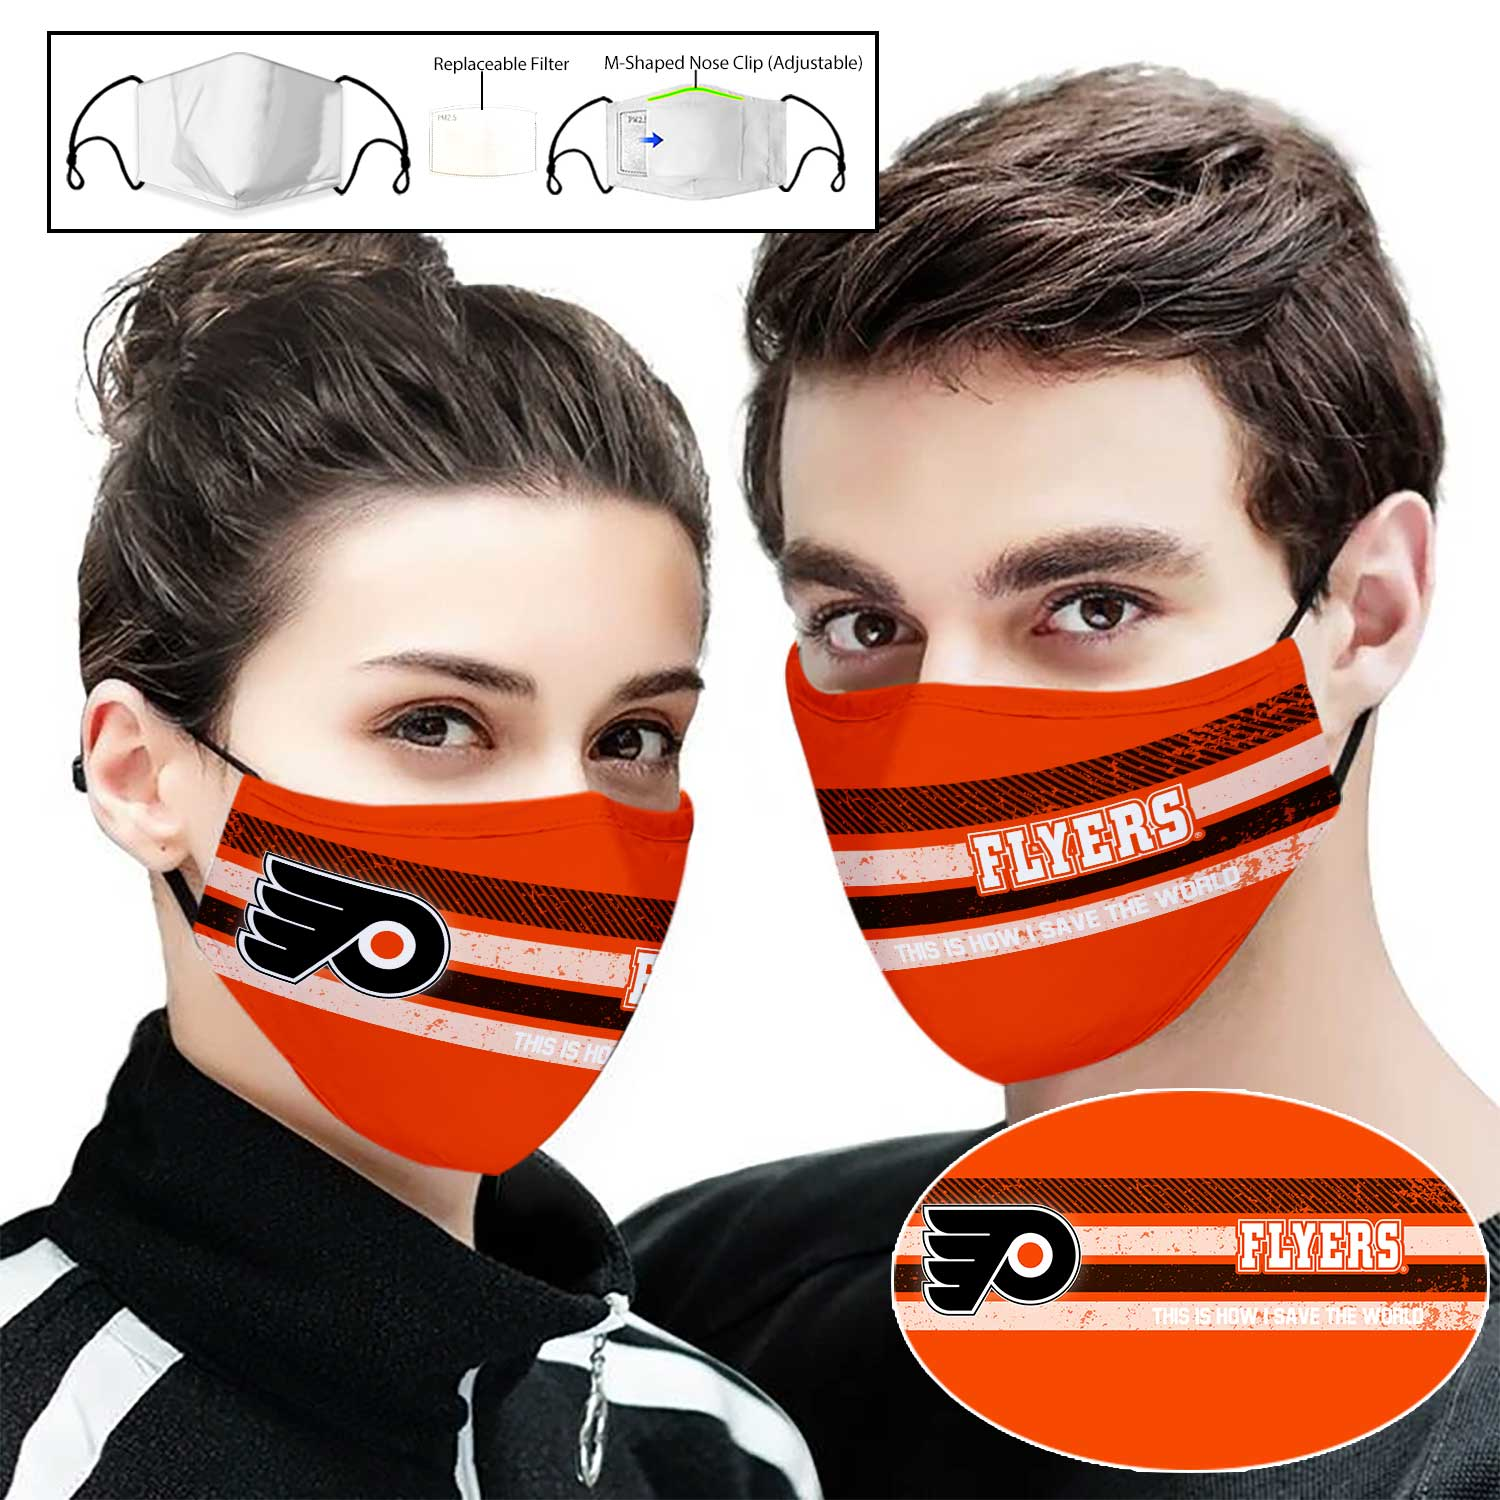 Philadelphia flyers this is how i save the world full printing face mask 1